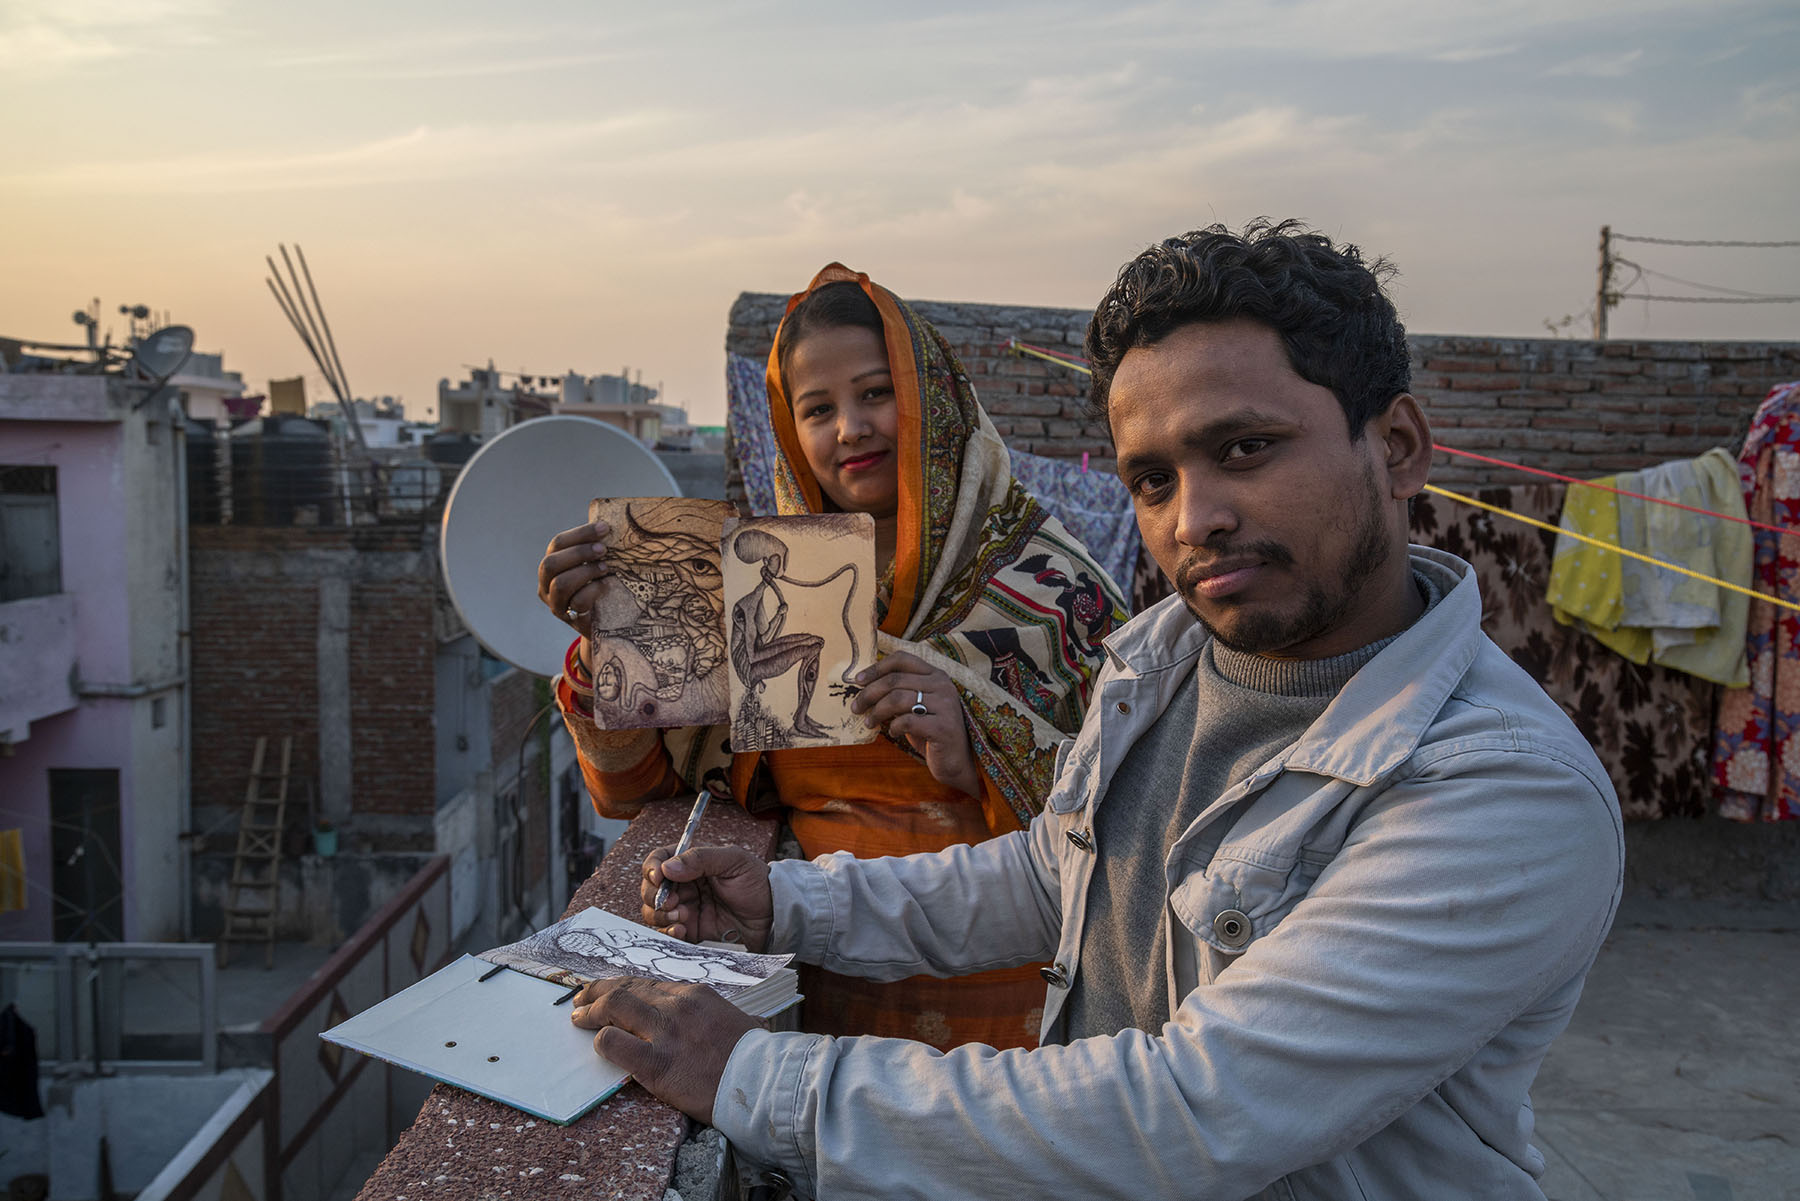 Niyaz and his wife Meenu are standing on an open terrace, leaning sideways against a parapet. Niyaz has placed an open sketchbook on top of the wall and holds a pen. Meenu is behind him, holding up two of his black-and-white sketches.